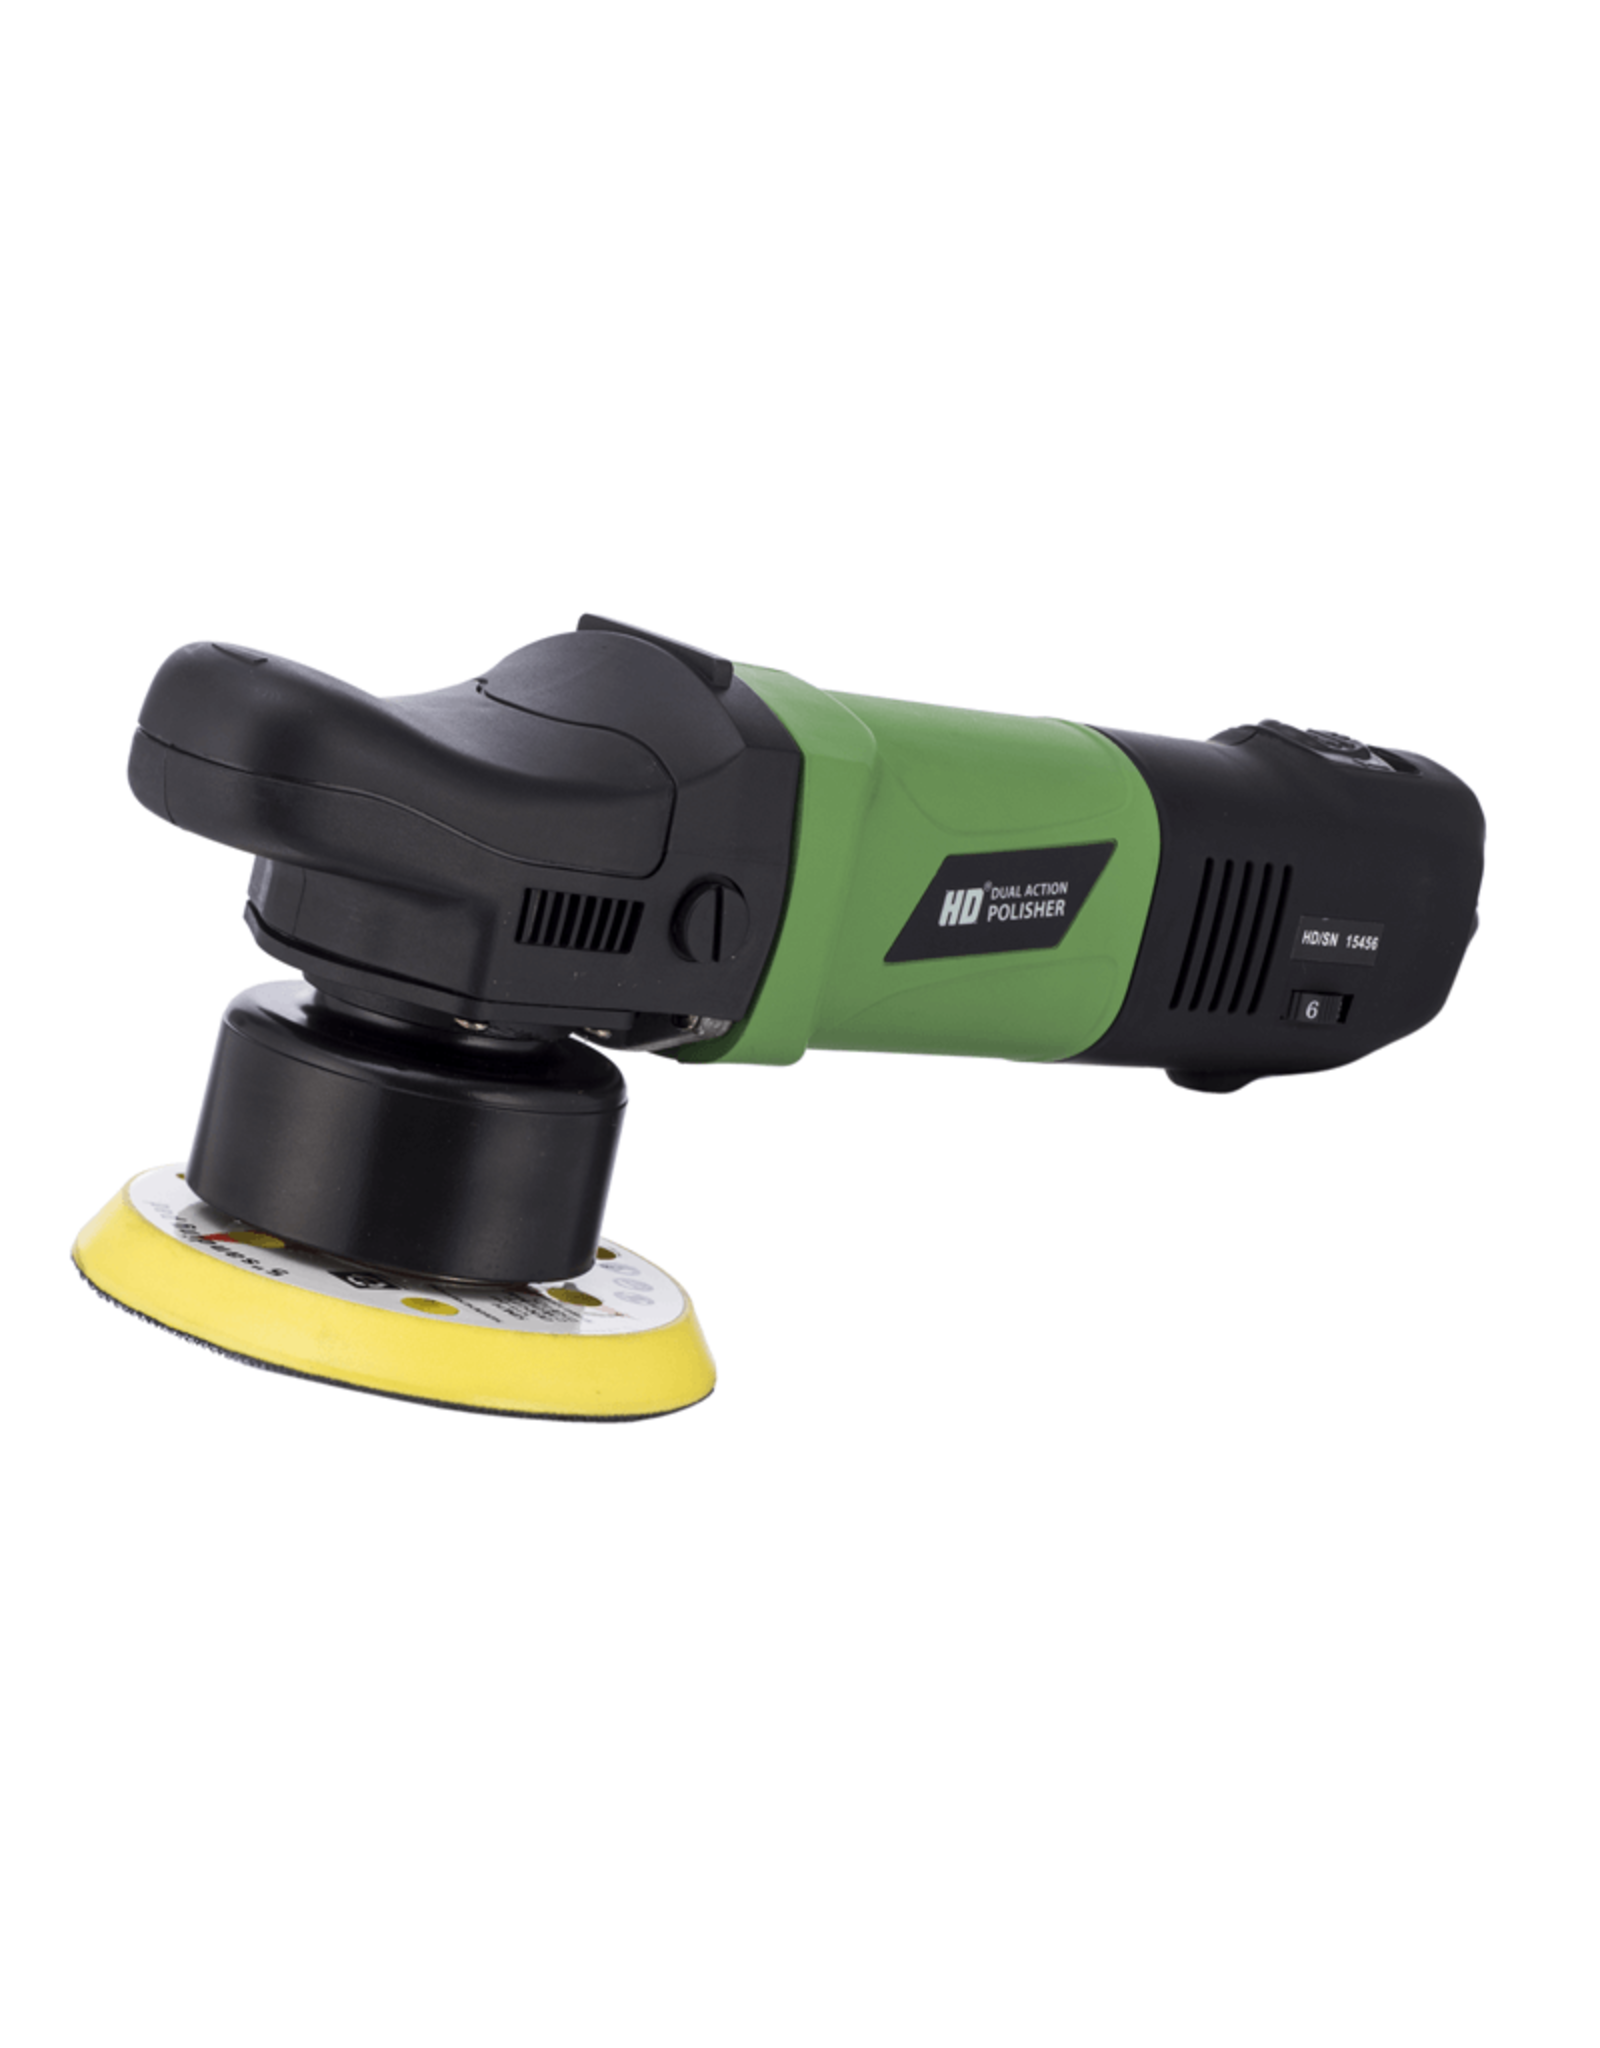 3D PRODUCTS 3D DA Polisher with backing plate (polijstmachine)